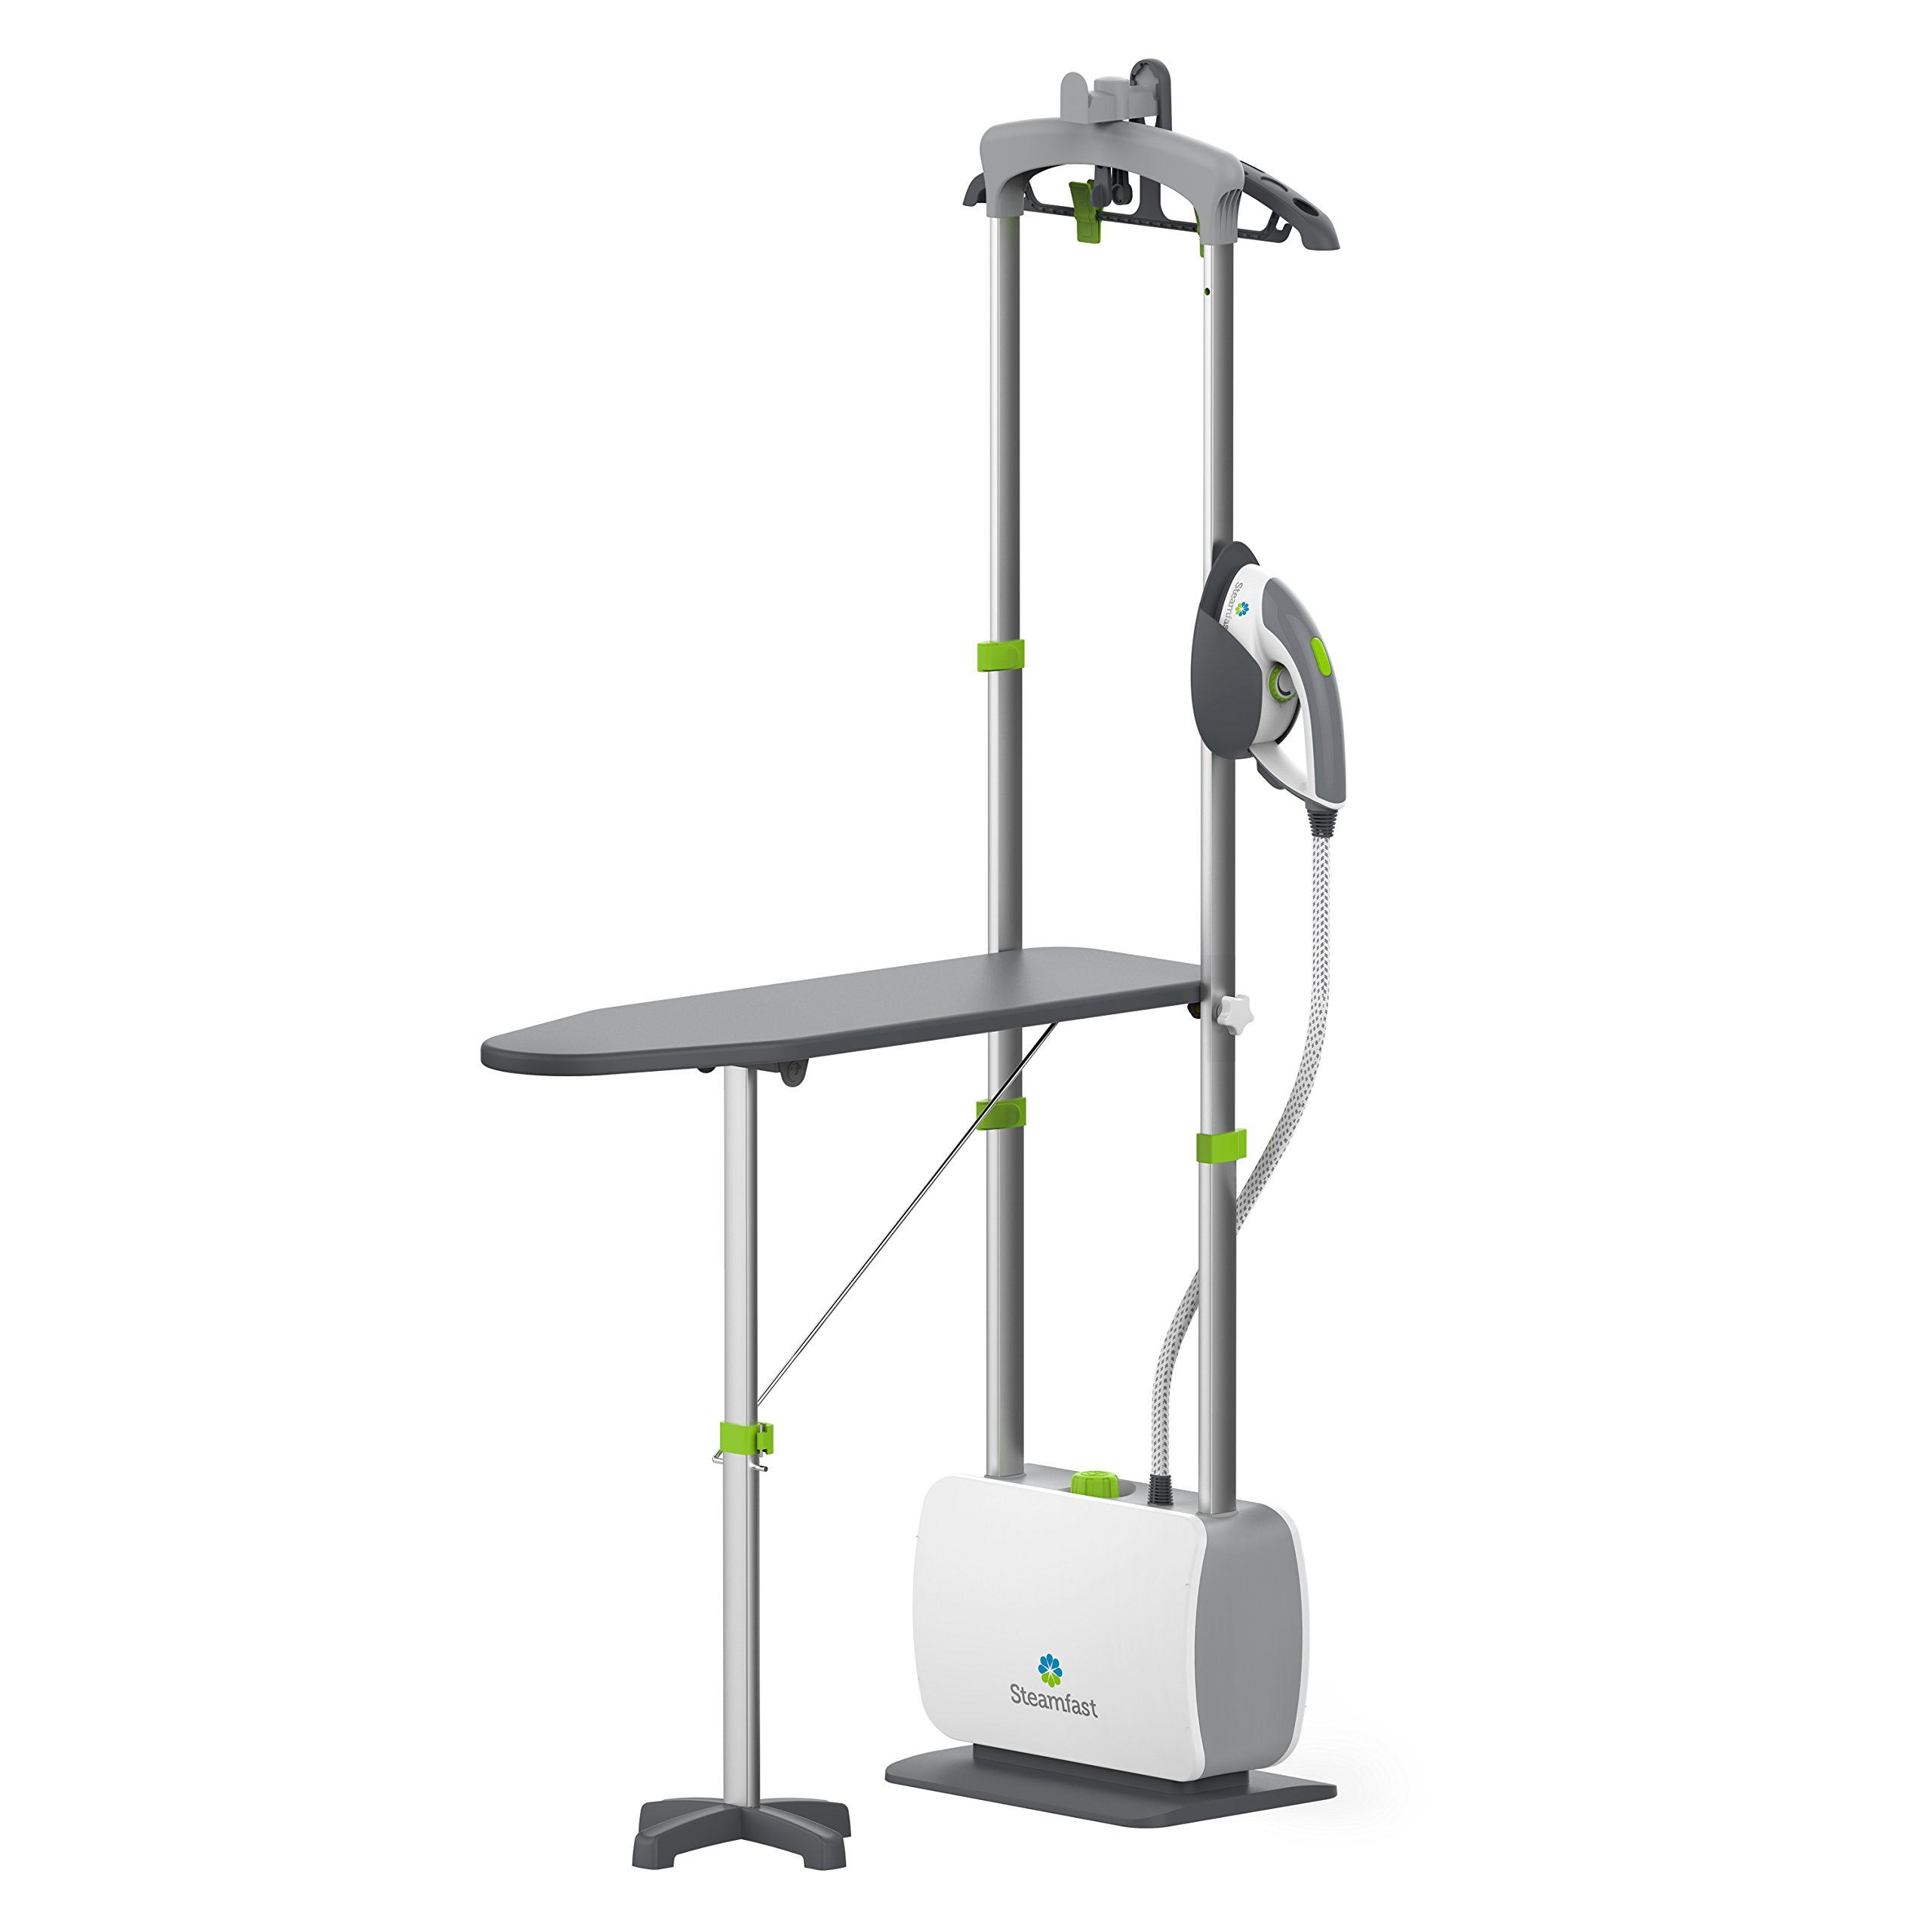 Steamfast SF-580 Professional Dual-Use Iron and Garment Steamer with 33.8-Ounce Water Tank, Built-In Ironing Board and Garment Hanger